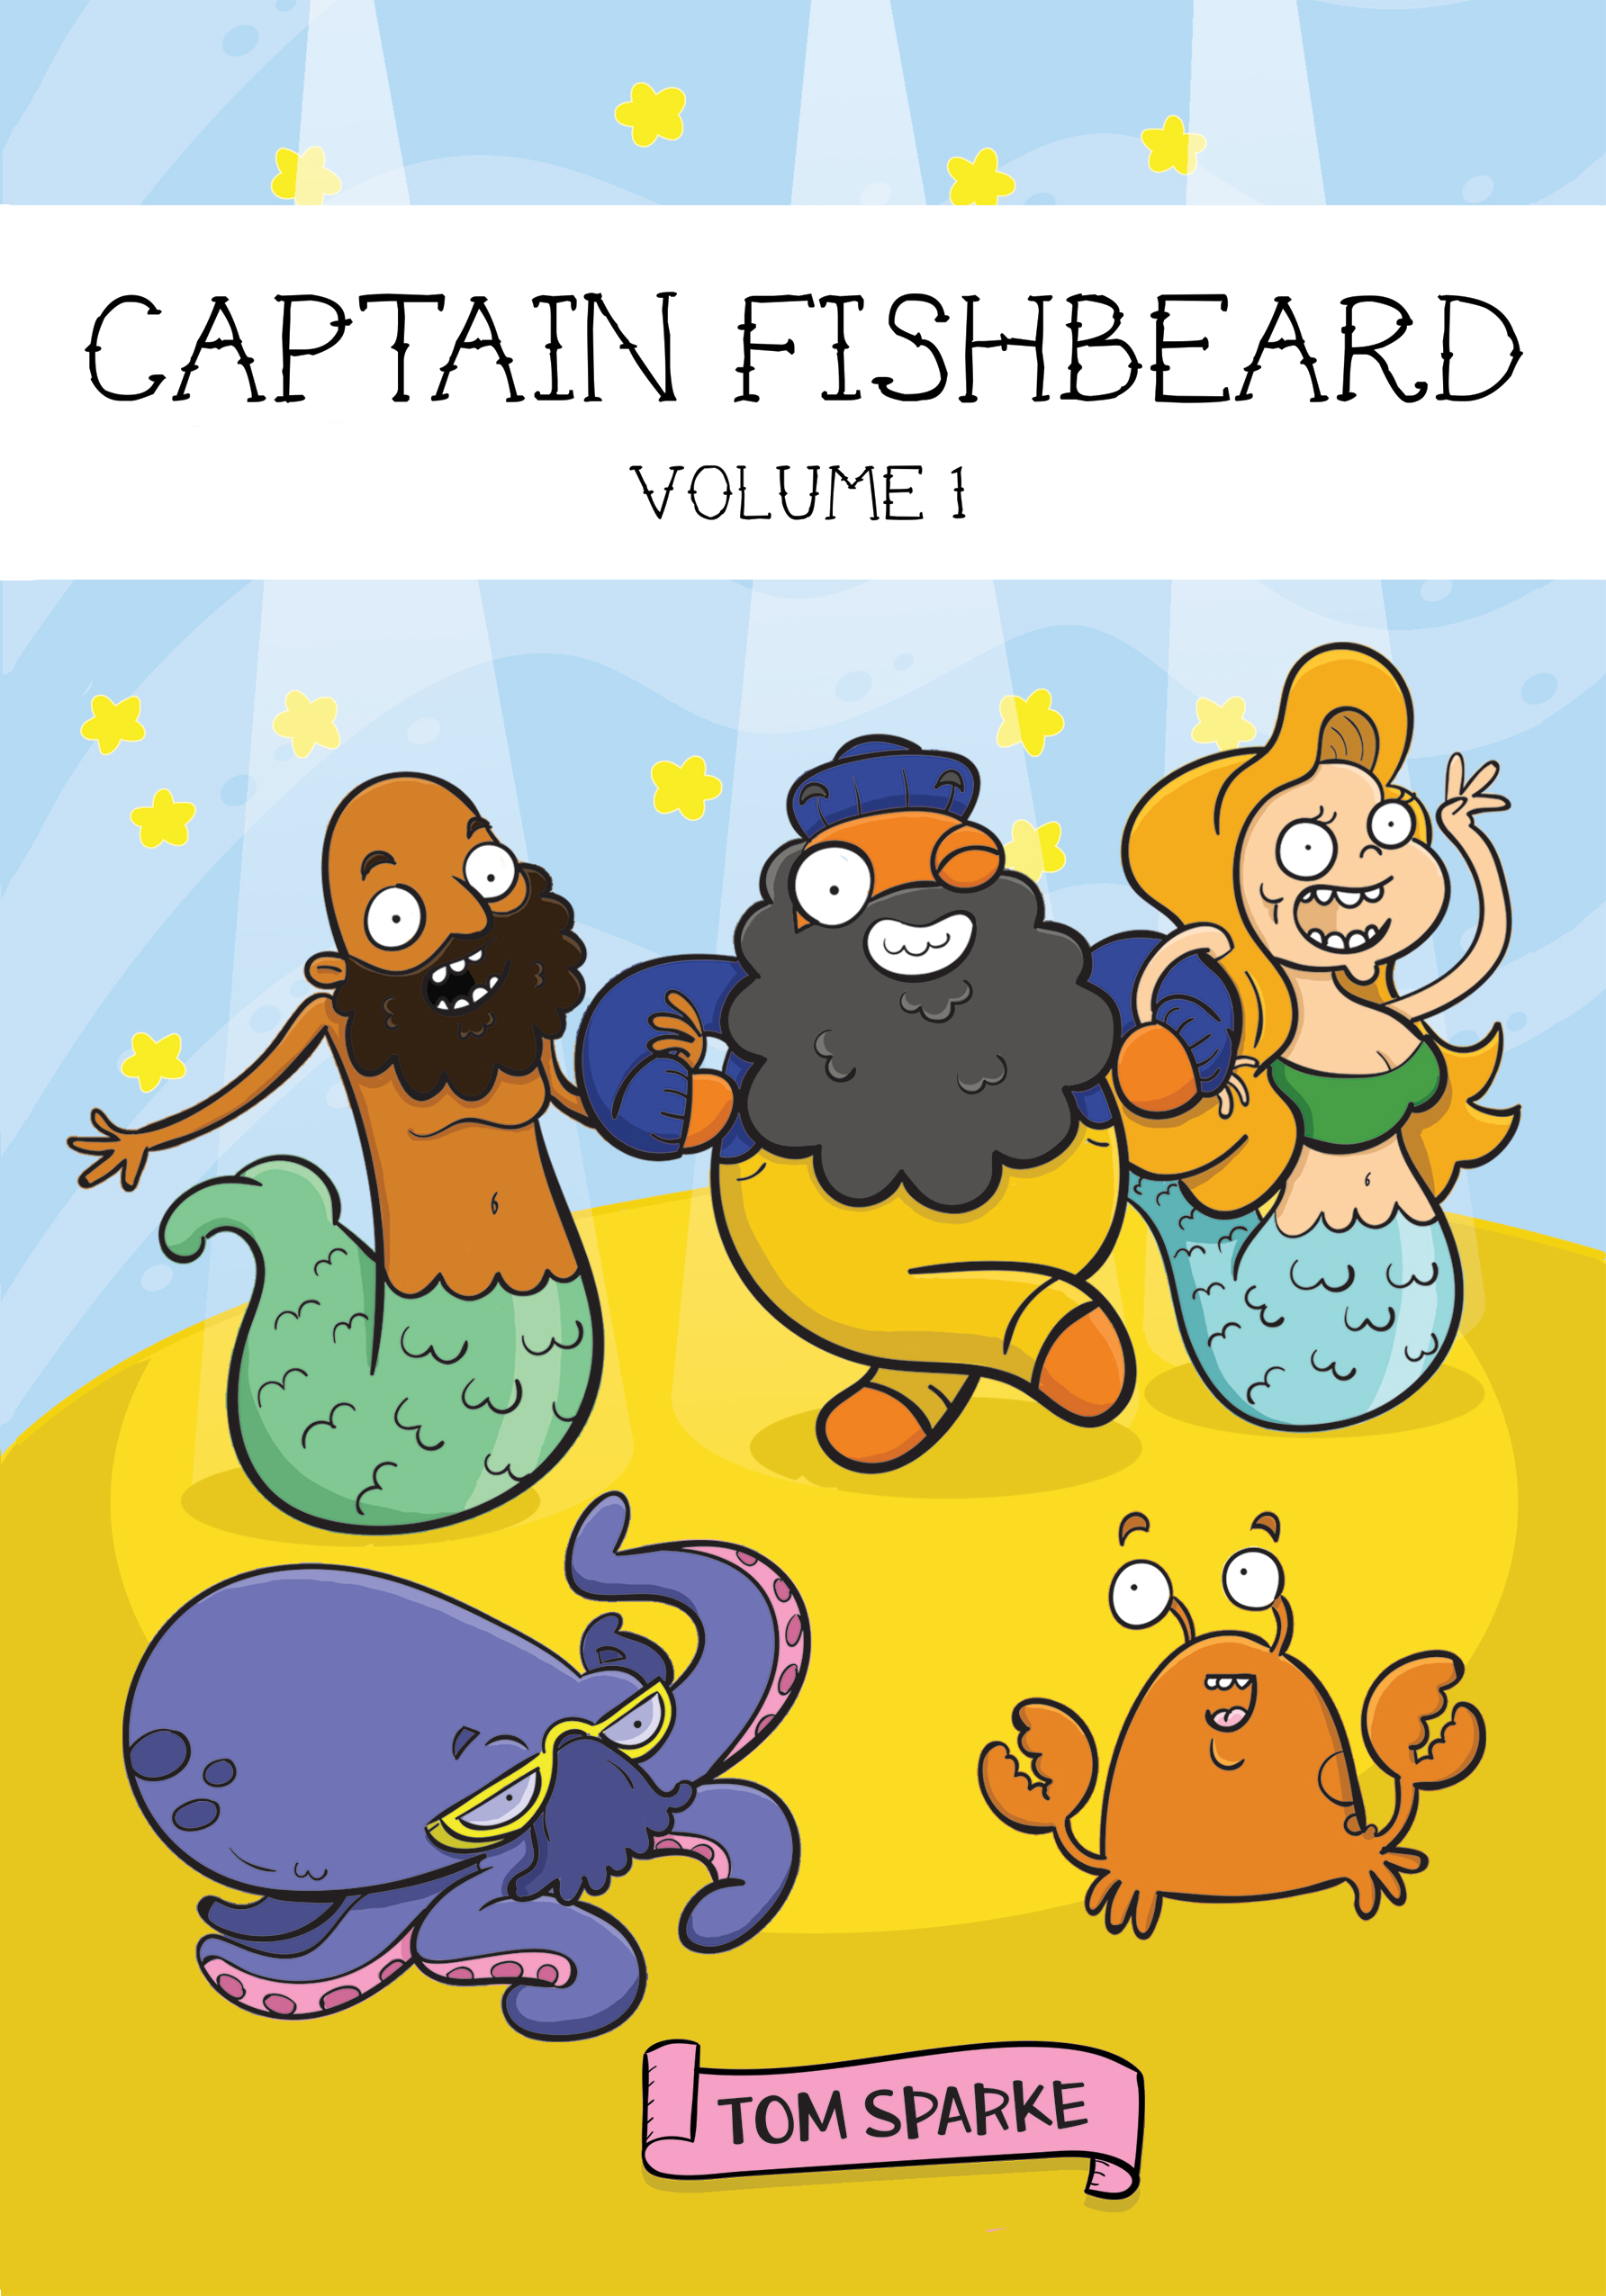 Captain Fishbeard Volume 1 - the first 26 comics!